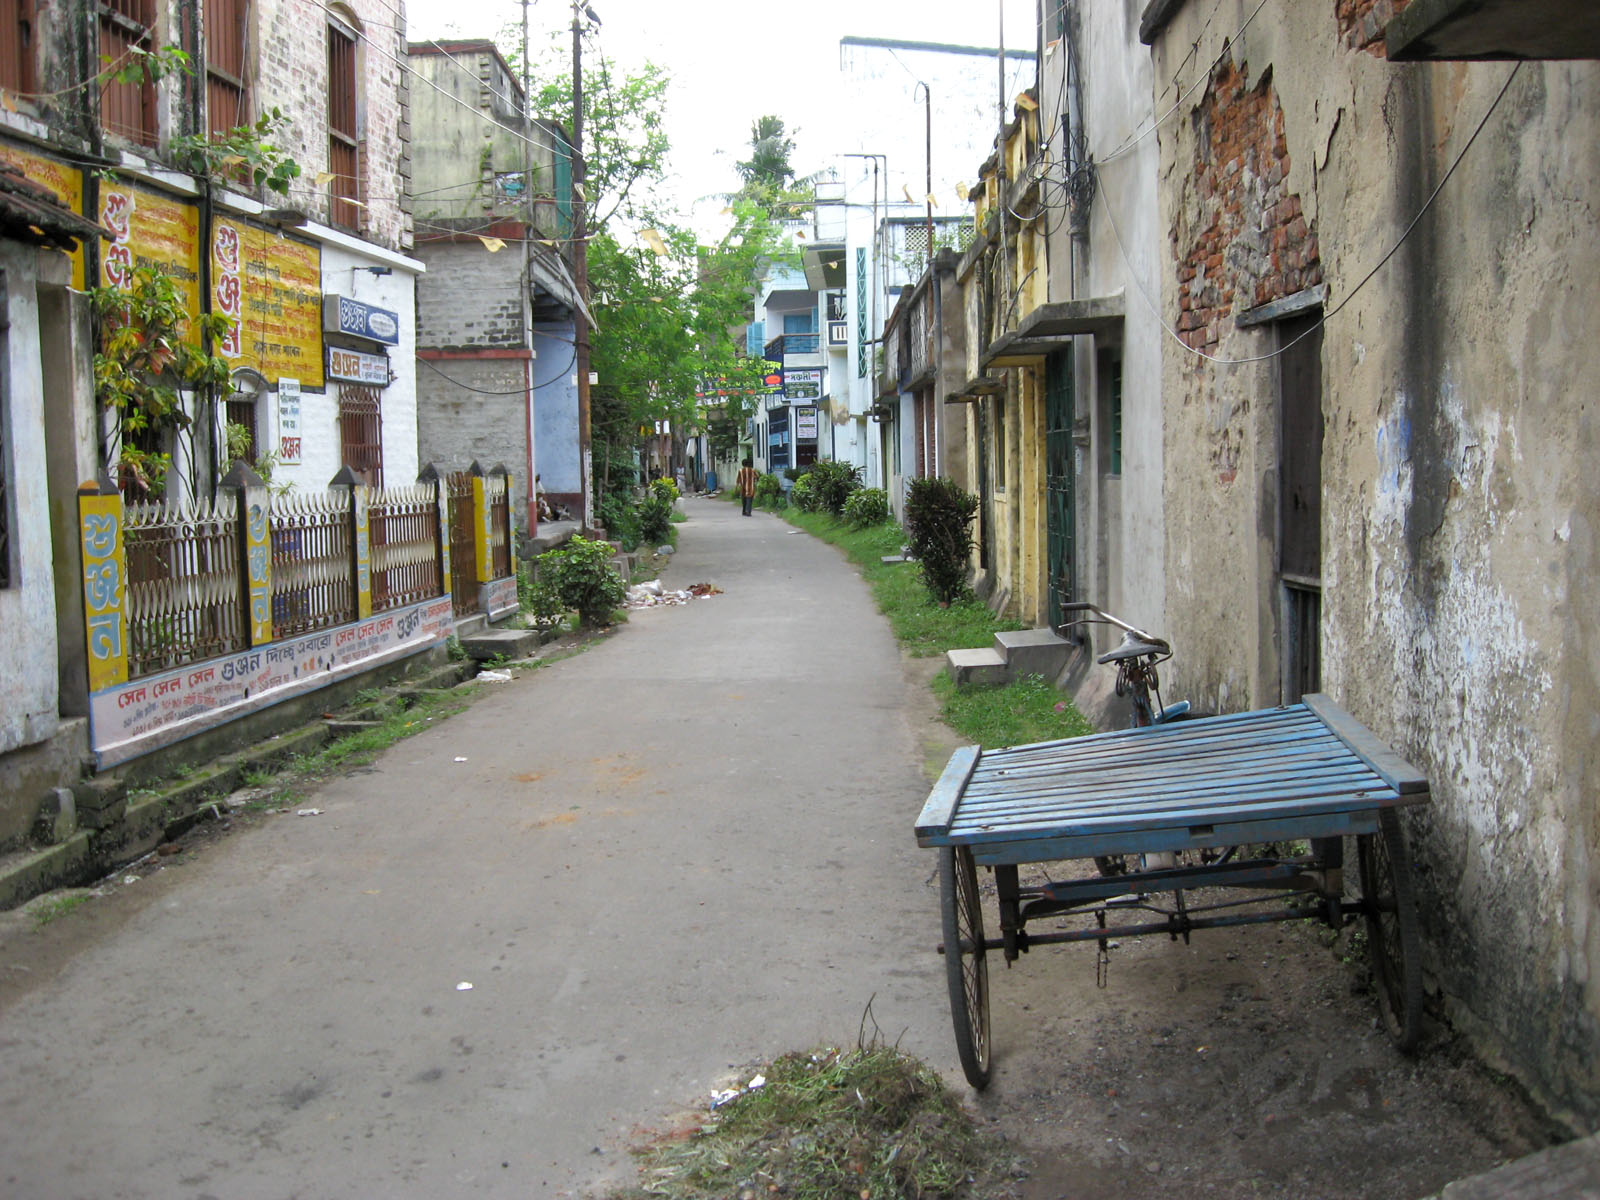 File:Naihati Road.jpg - Wikimedia Commons